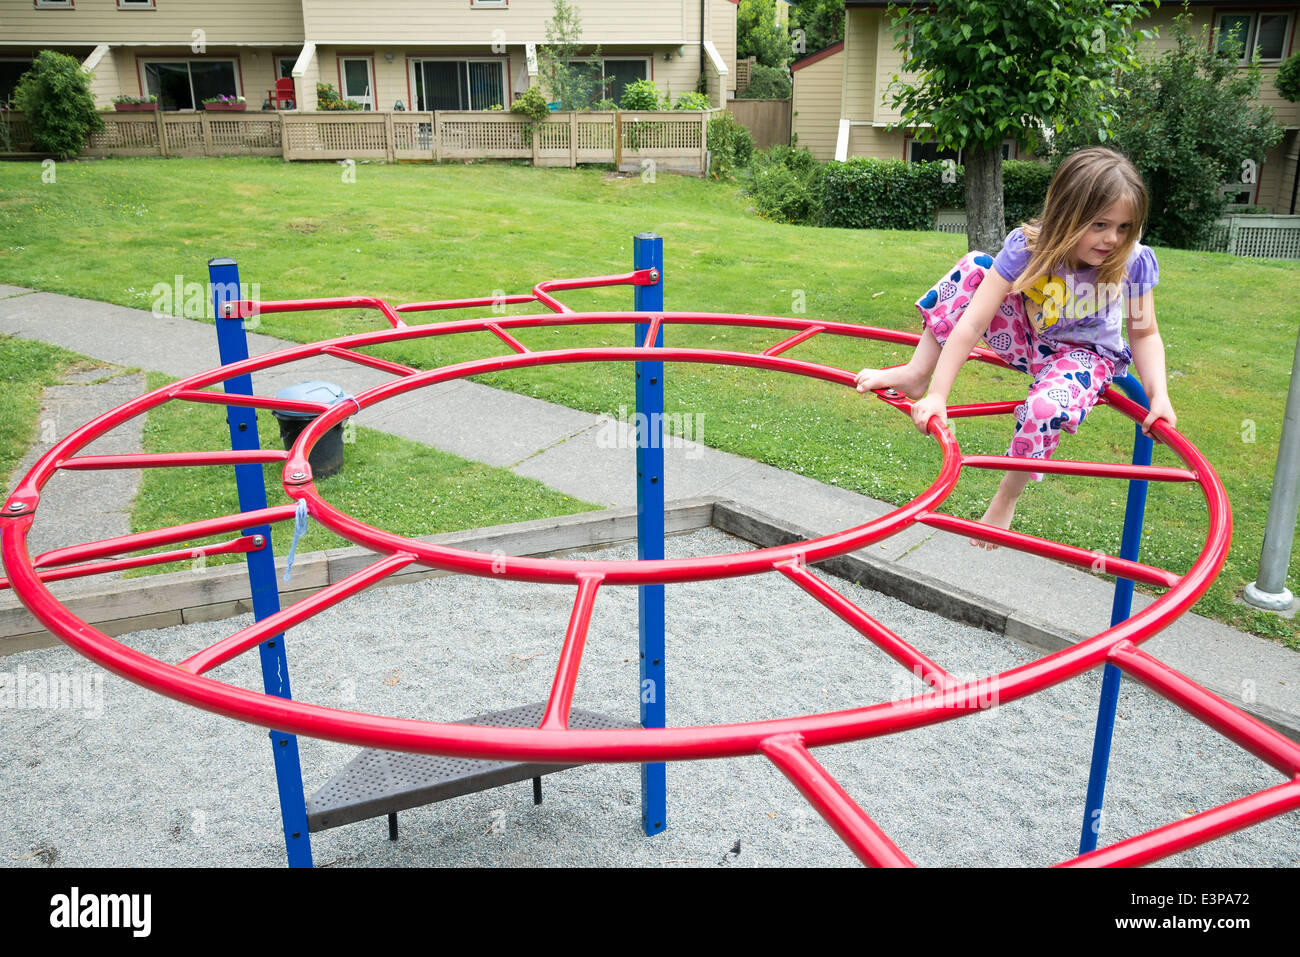 Young girl on playground bars. - Stock Image